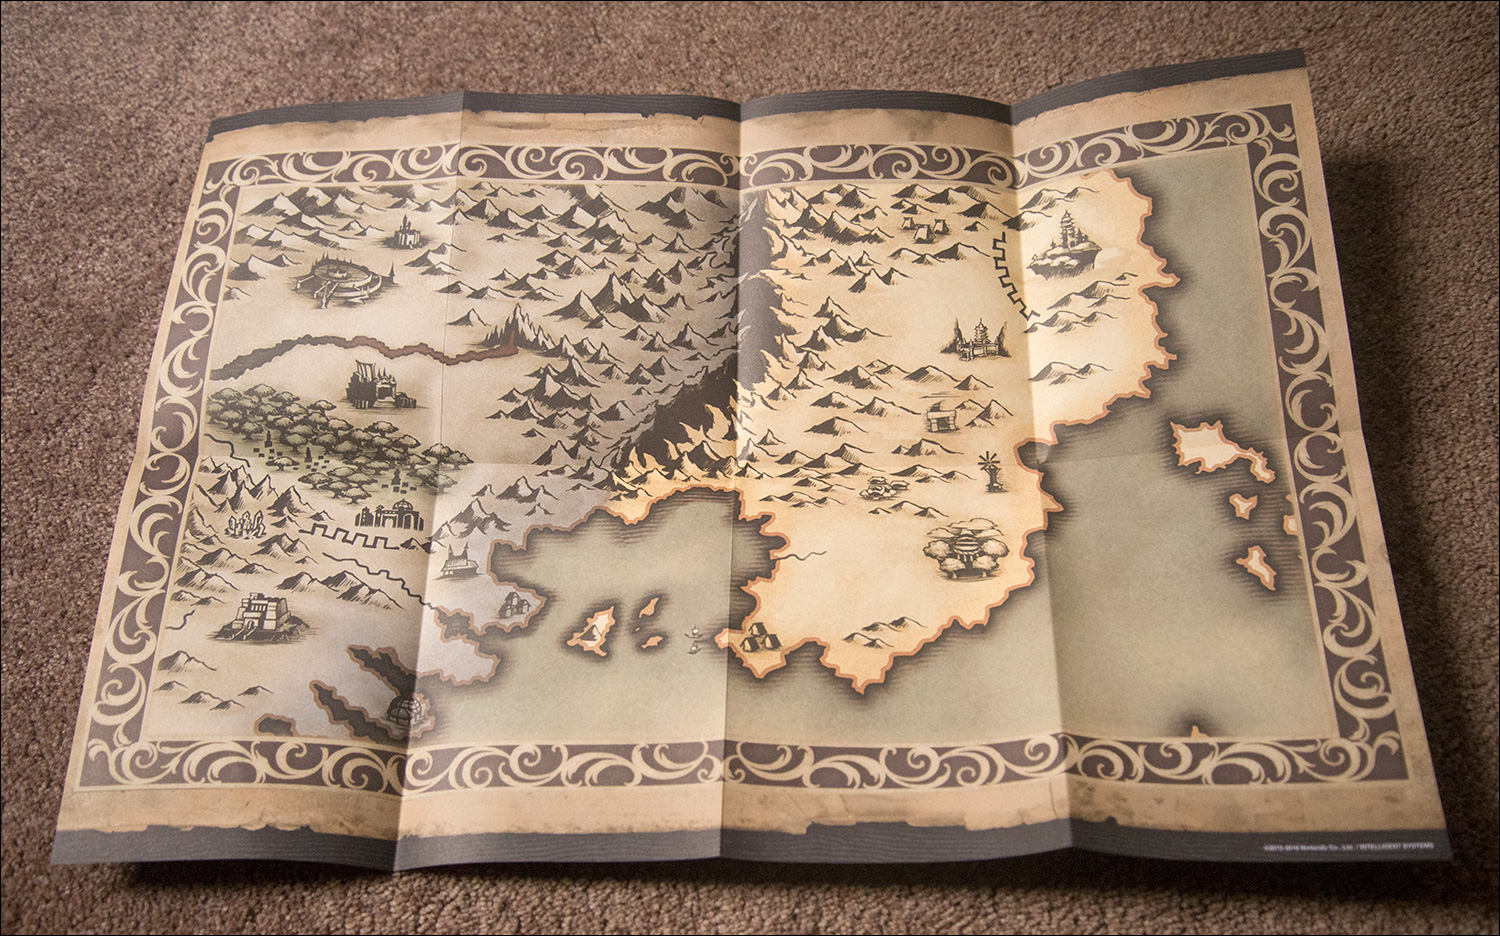 Fire-Emblem-Fates-Special-Edition-Map